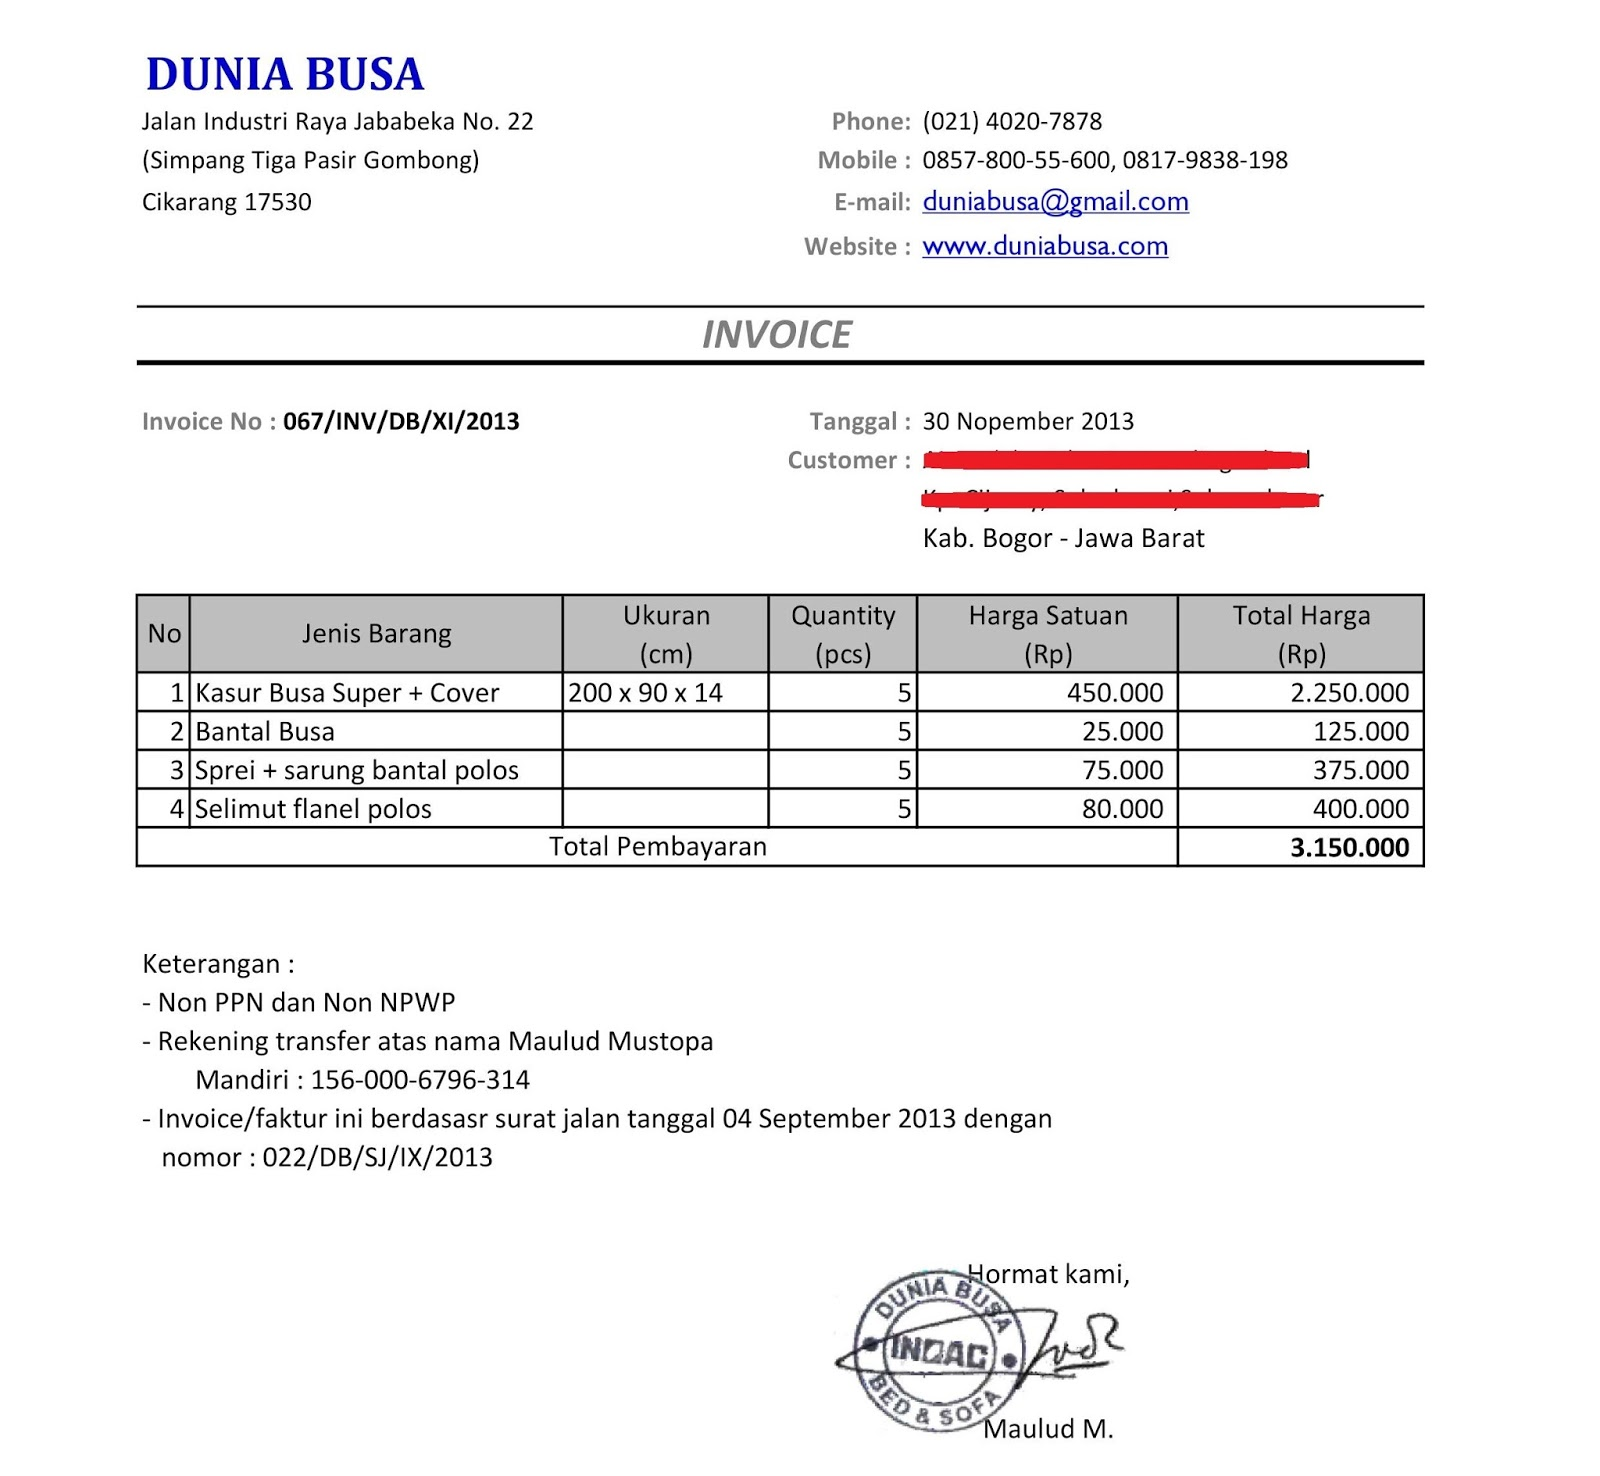 Aldiablosus  Unusual Free Invoice Online  Create Invoice Online  Invoice Template  With Heavenly Contoh Format Invoice Atau Surat Tagihan  Brankas Arsip  Free Invoice Online With Amusing How To Send Invoice Through Paypal Also Nvc Invoice In Addition Vendor Invoice Posting In Sap And Invoice Google Docs As Well As Invoice Ebay Additionally Excel Invoice Template  From Sklepco With Aldiablosus  Heavenly Free Invoice Online  Create Invoice Online  Invoice Template  With Amusing Contoh Format Invoice Atau Surat Tagihan  Brankas Arsip  Free Invoice Online And Unusual How To Send Invoice Through Paypal Also Nvc Invoice In Addition Vendor Invoice Posting In Sap From Sklepco